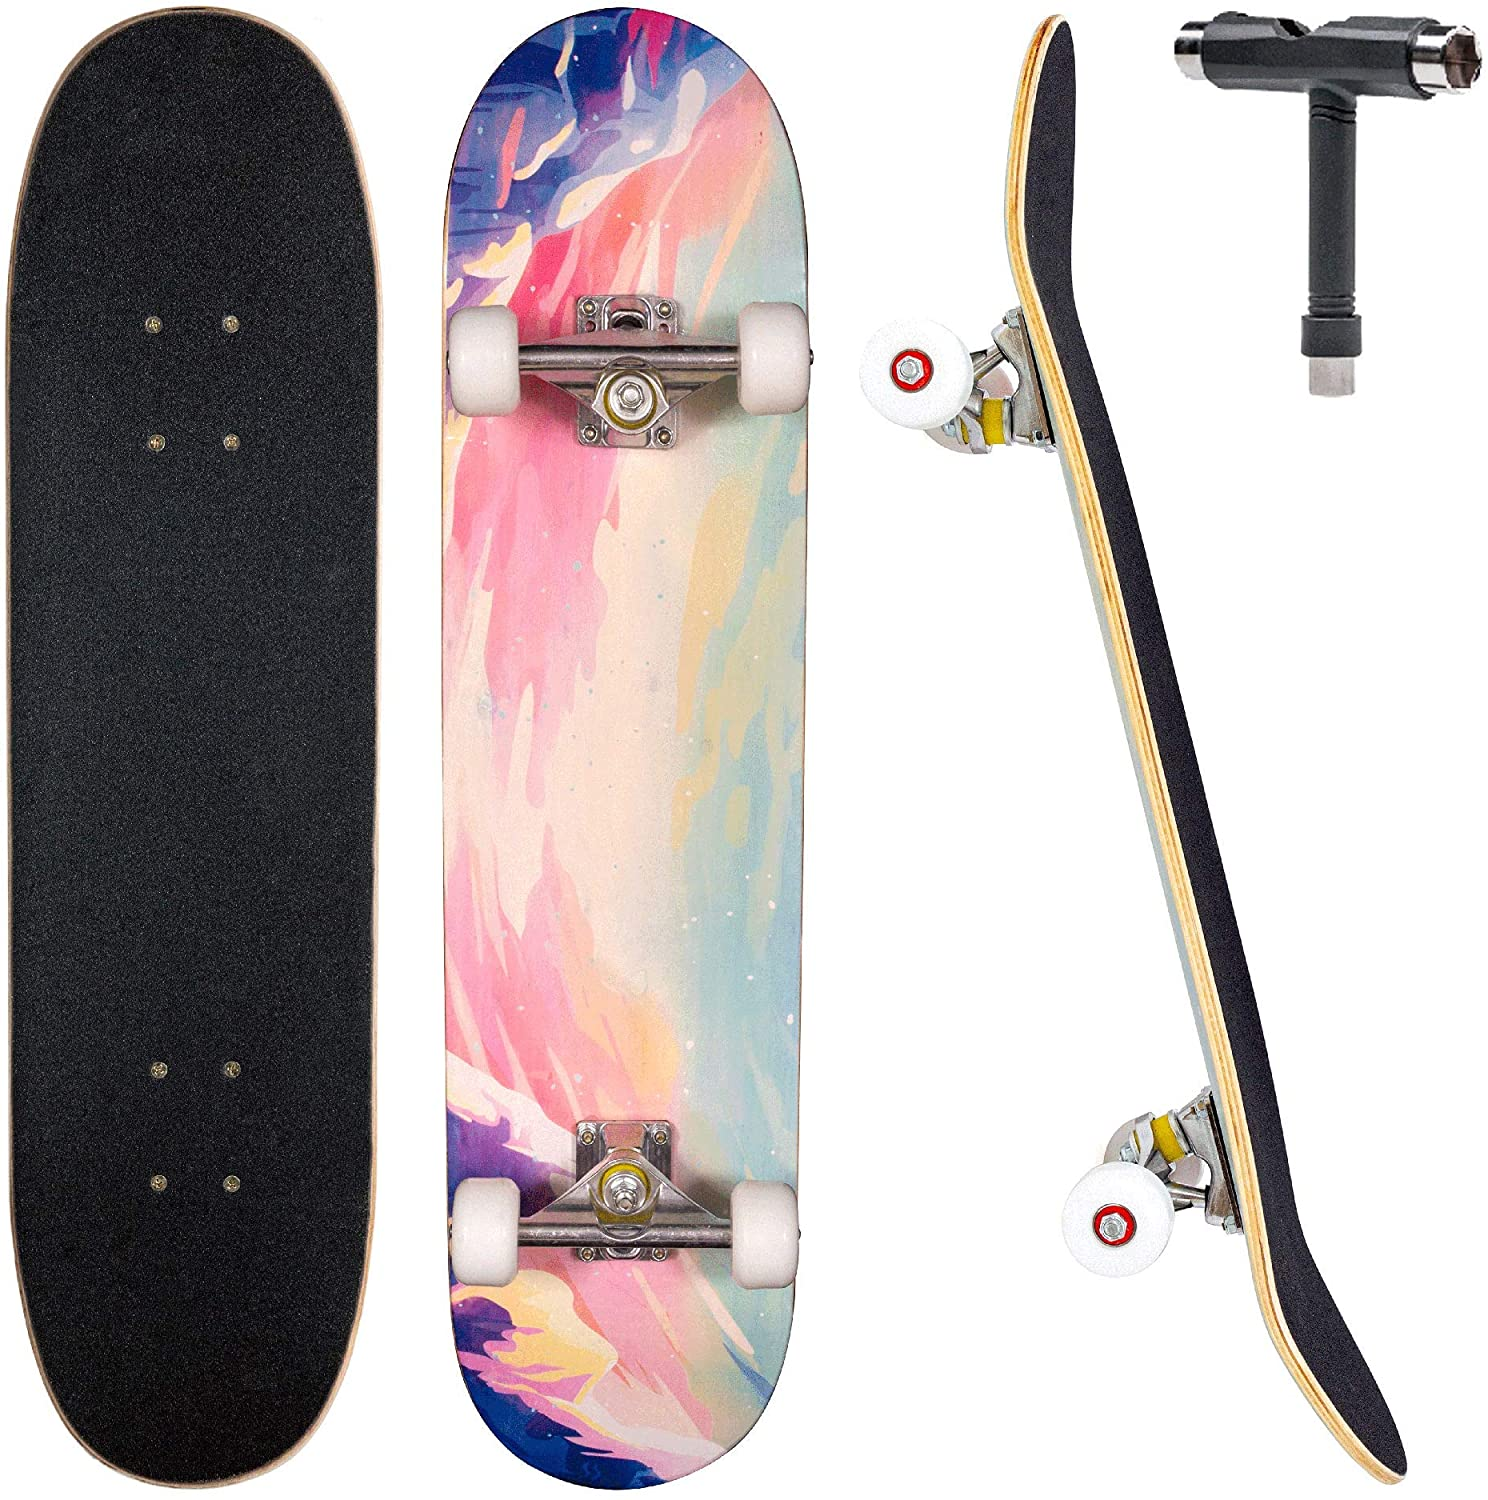 """JECOLOS Pro Complete Skateboards for Beginners Adults Teens Kids Girls Boys 31""""x8"""" Skate Boards 7 Layers Deck Maple Wood Longboards (Forest) : Sports & Outdoors"""